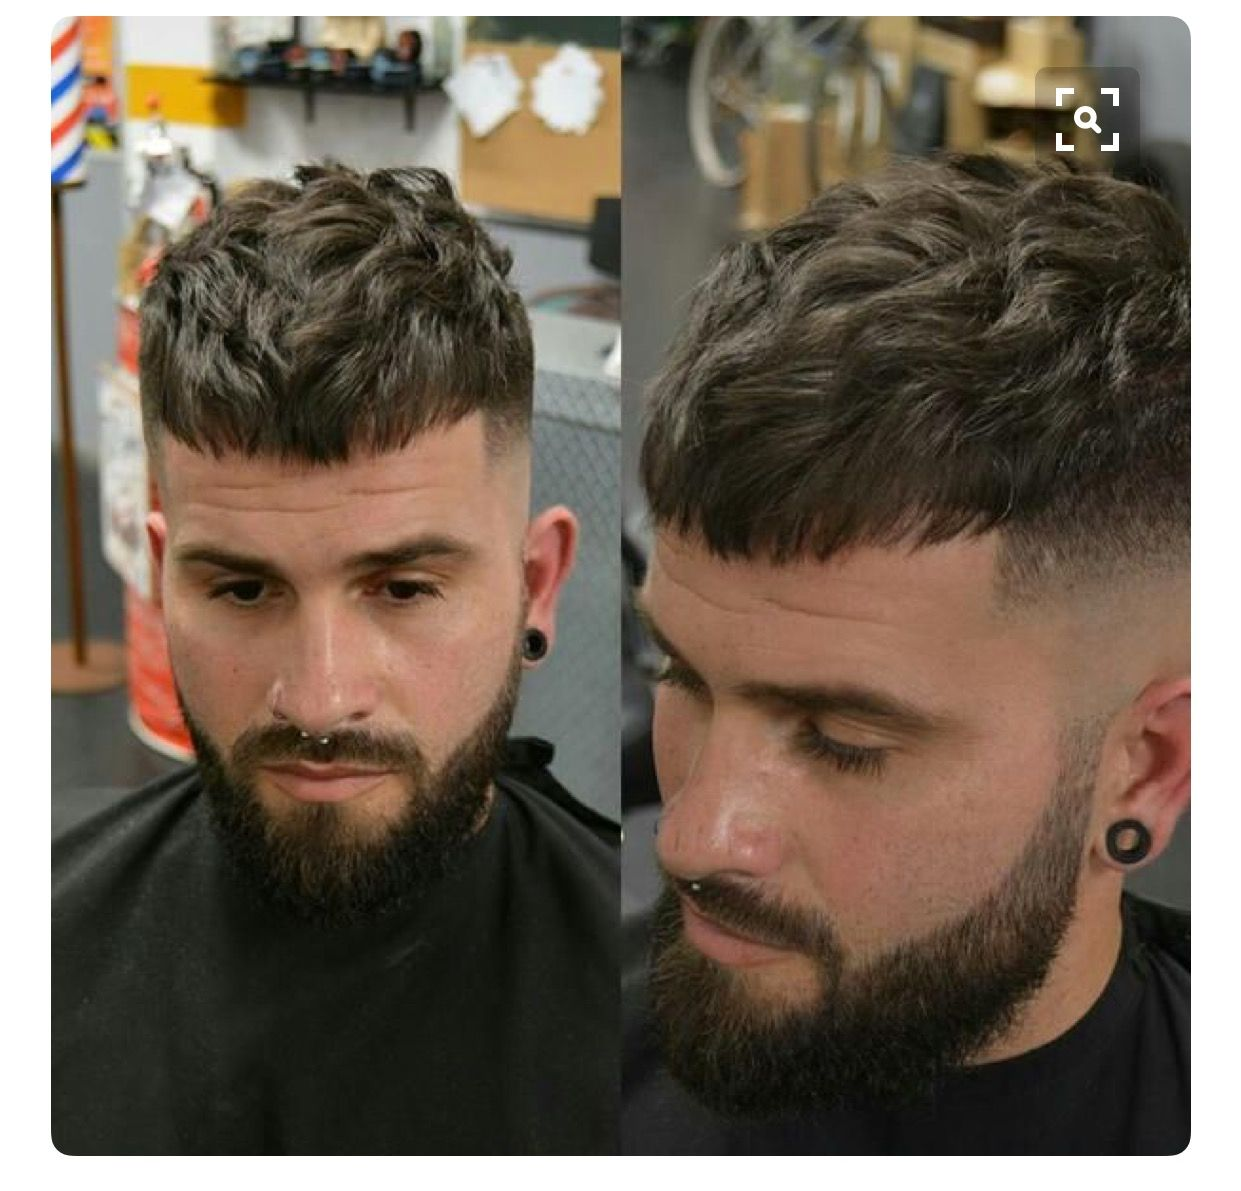 Mens haircut short sides pin by kyle christie on hair  pinterest  haircuts hair style and